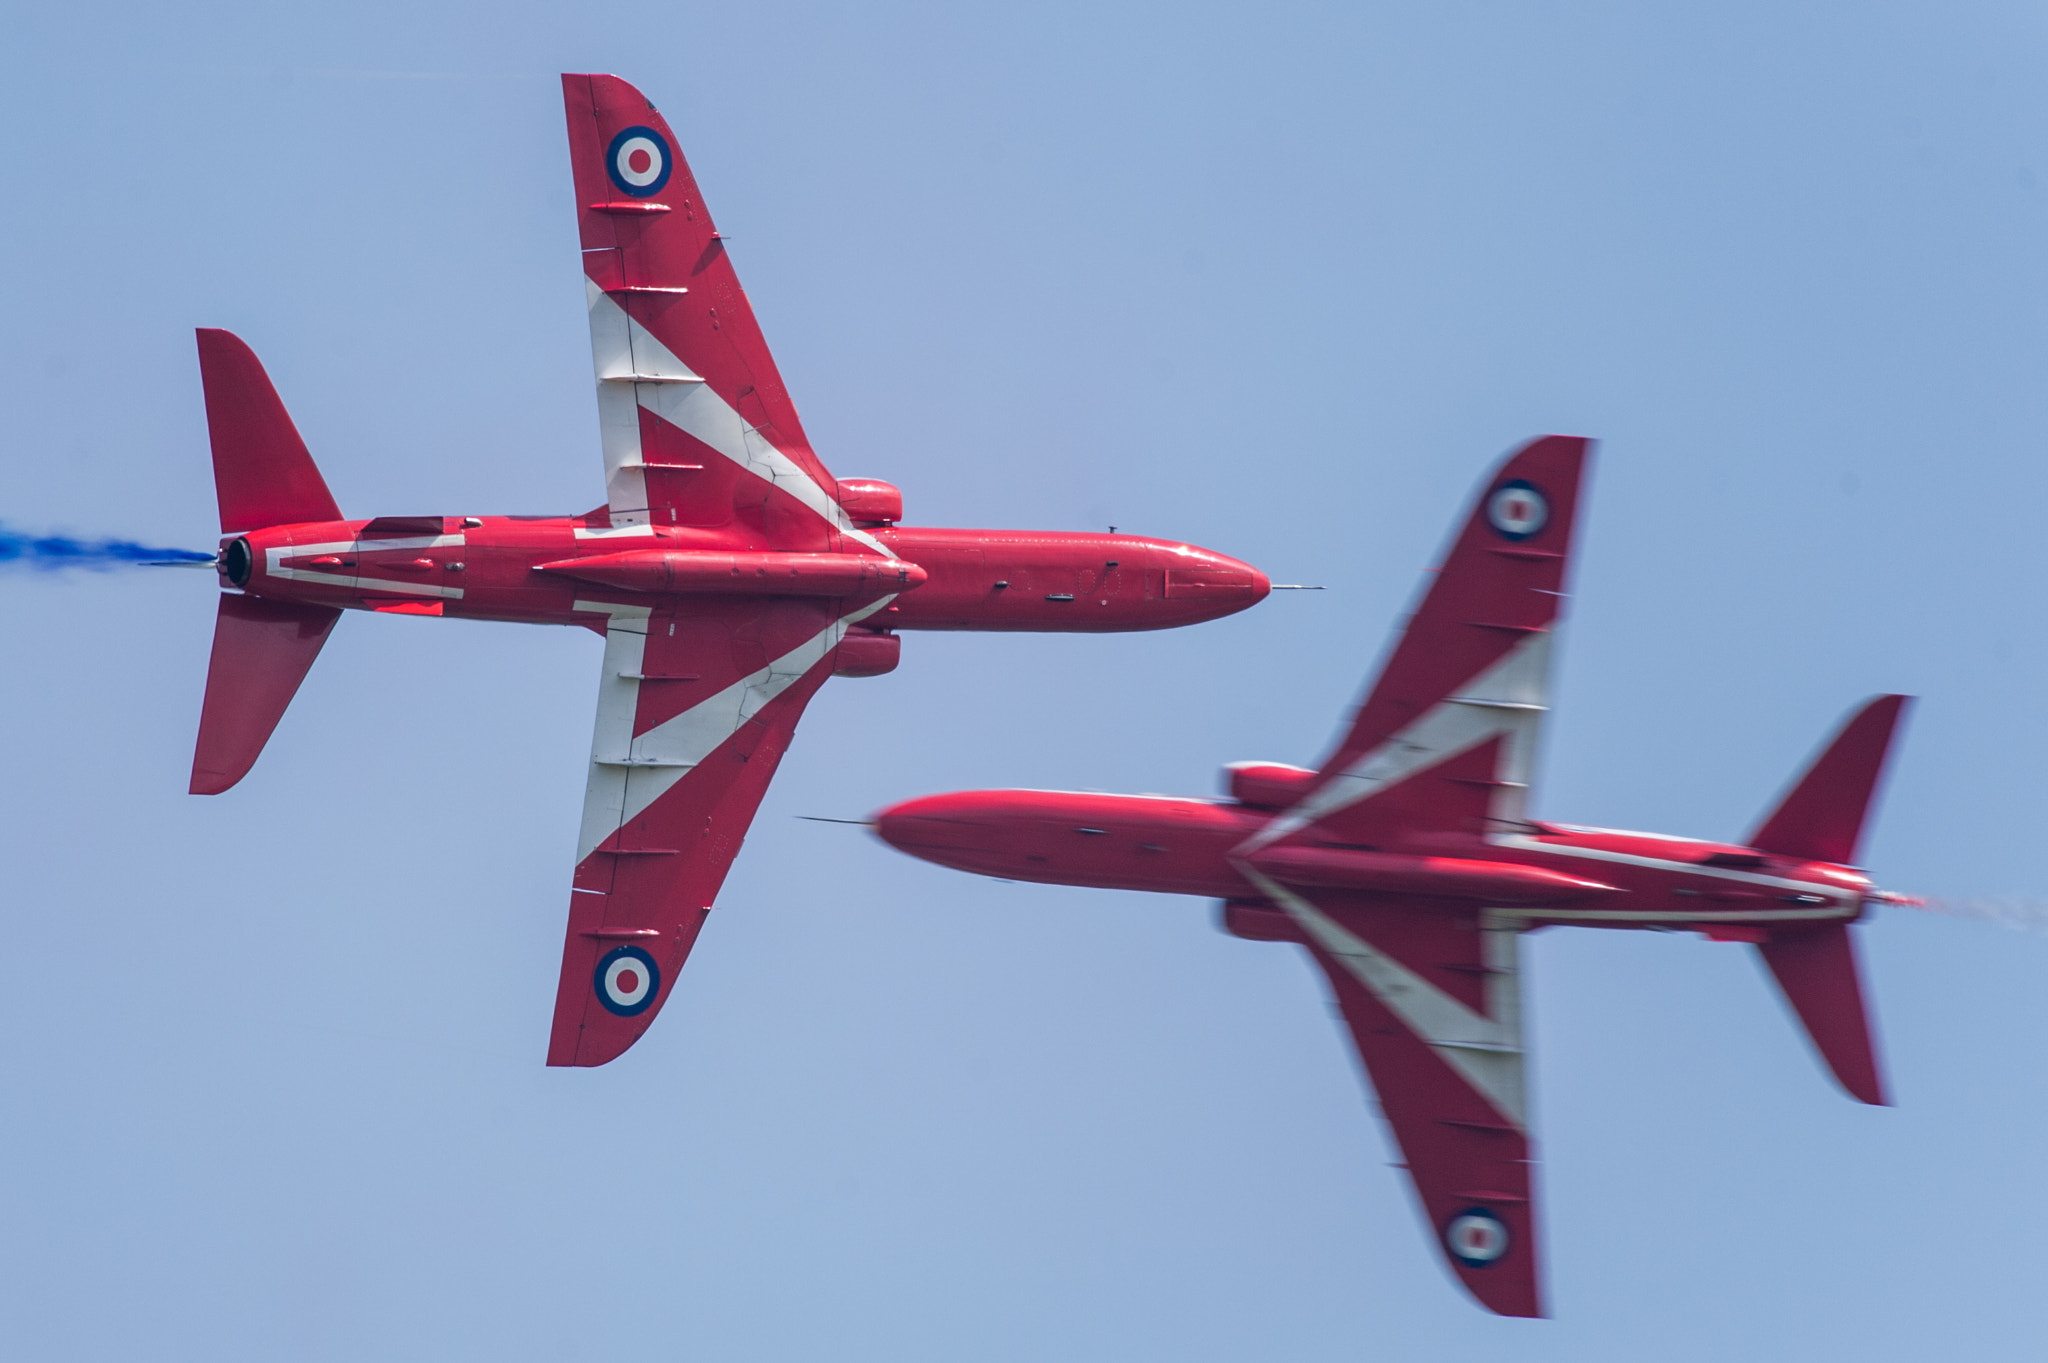 Photograph Reds Too by Guy Swarbrick on 500px